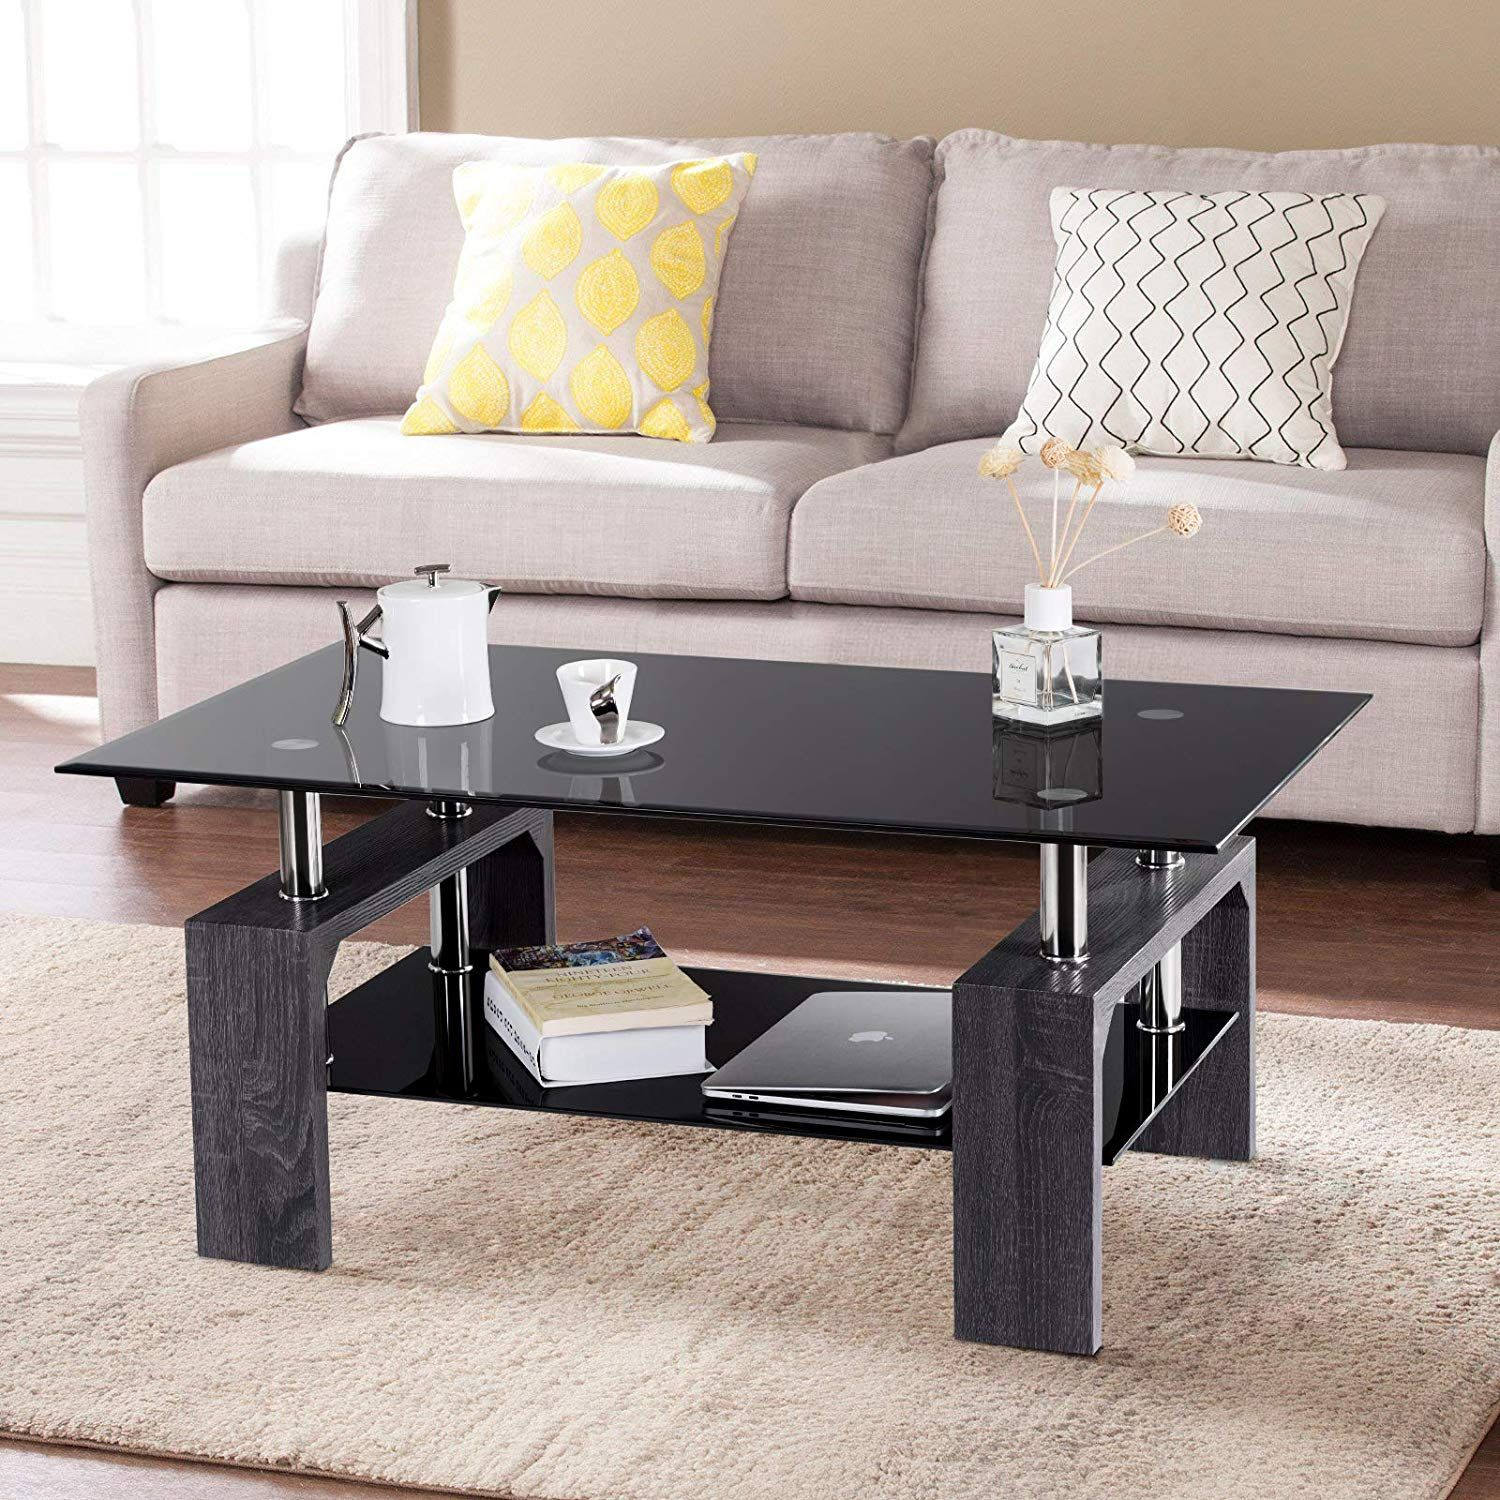 Its Compact Structure And Beautiful Texture Can Surprisingly Highlight Your Home Deco P Black Furniture Living Room Coffee Table With Shelf Glass Coffee Table [ 1500 x 1500 Pixel ]